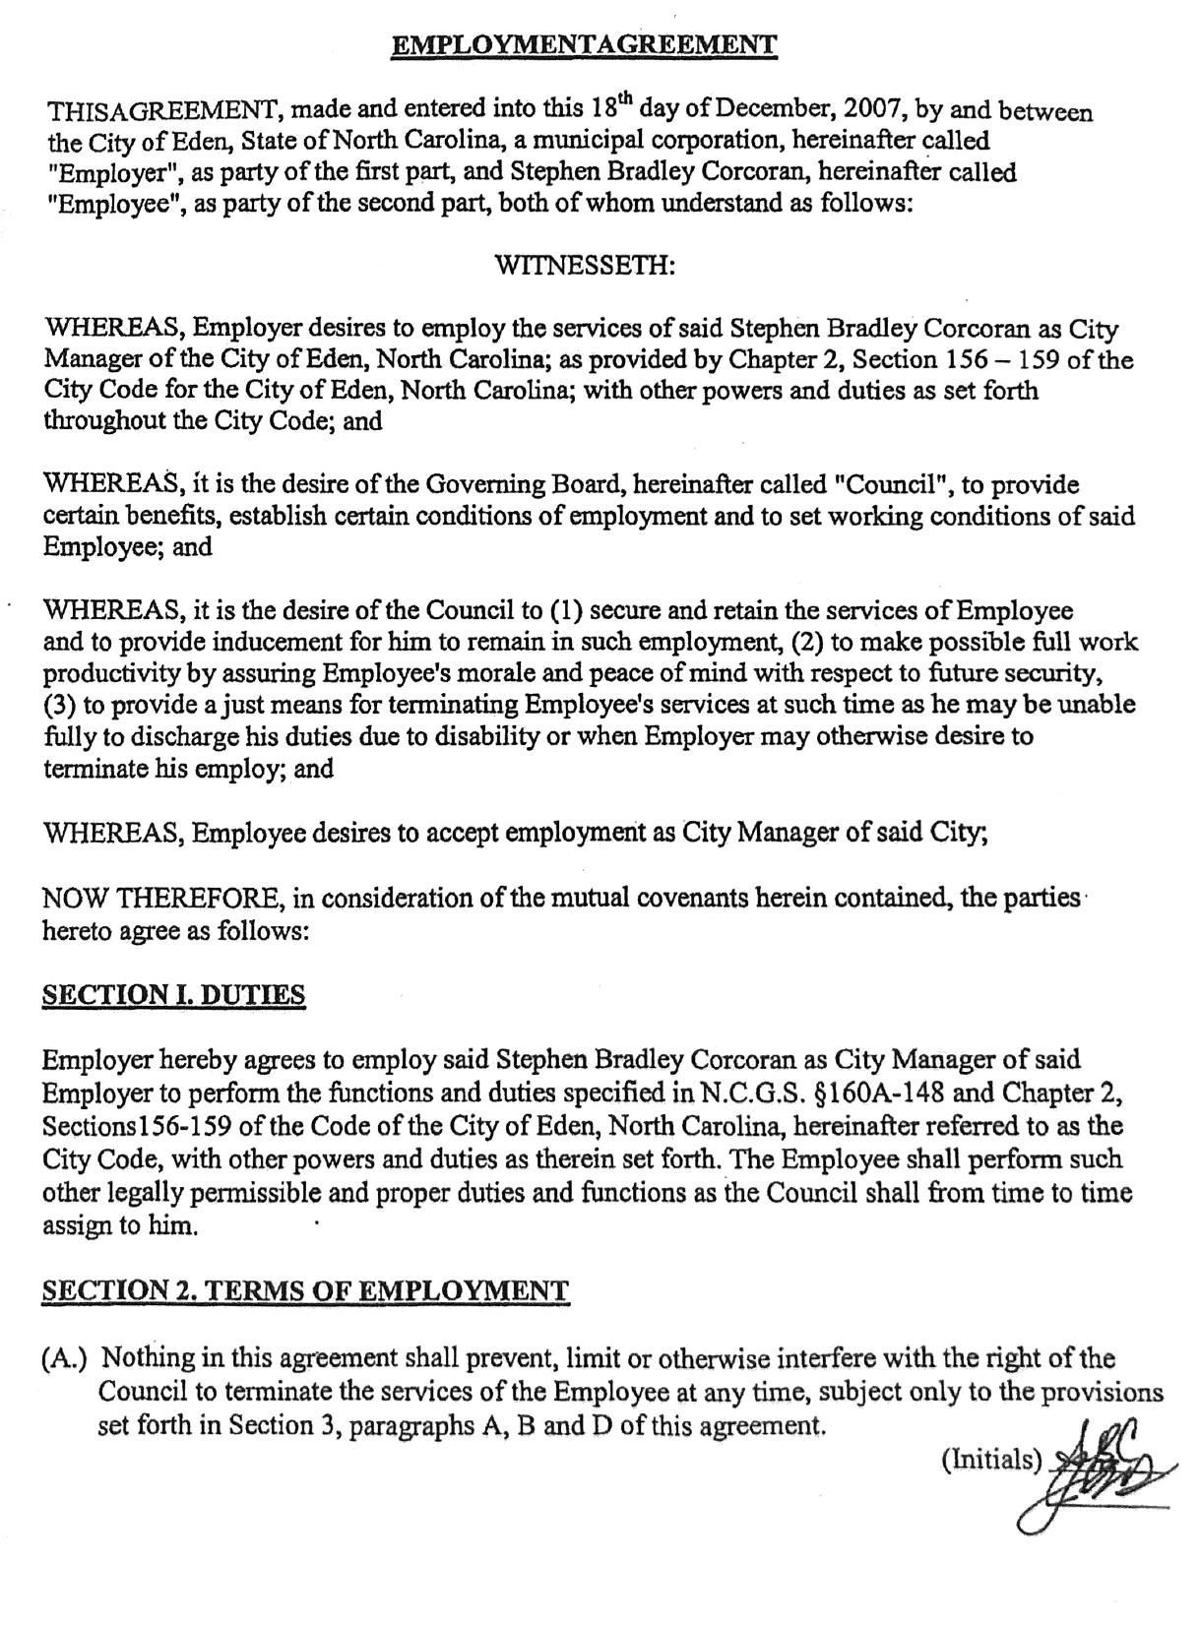 READ: City of Eden Employment Agreement with Brad Corcoran